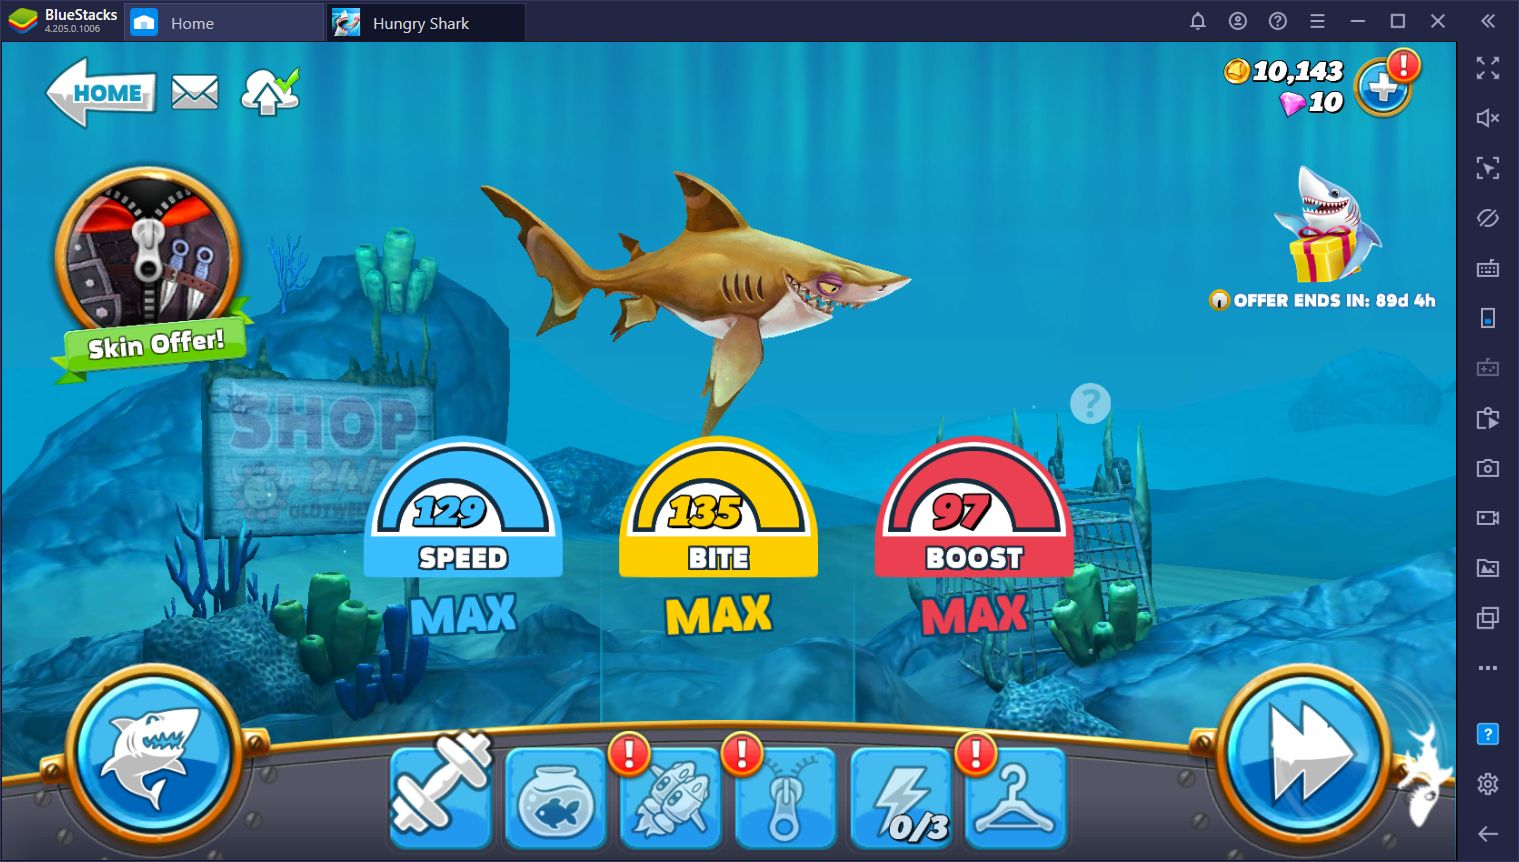 Hungry Shark World - A Guide on the Different Sharks and Size Categories